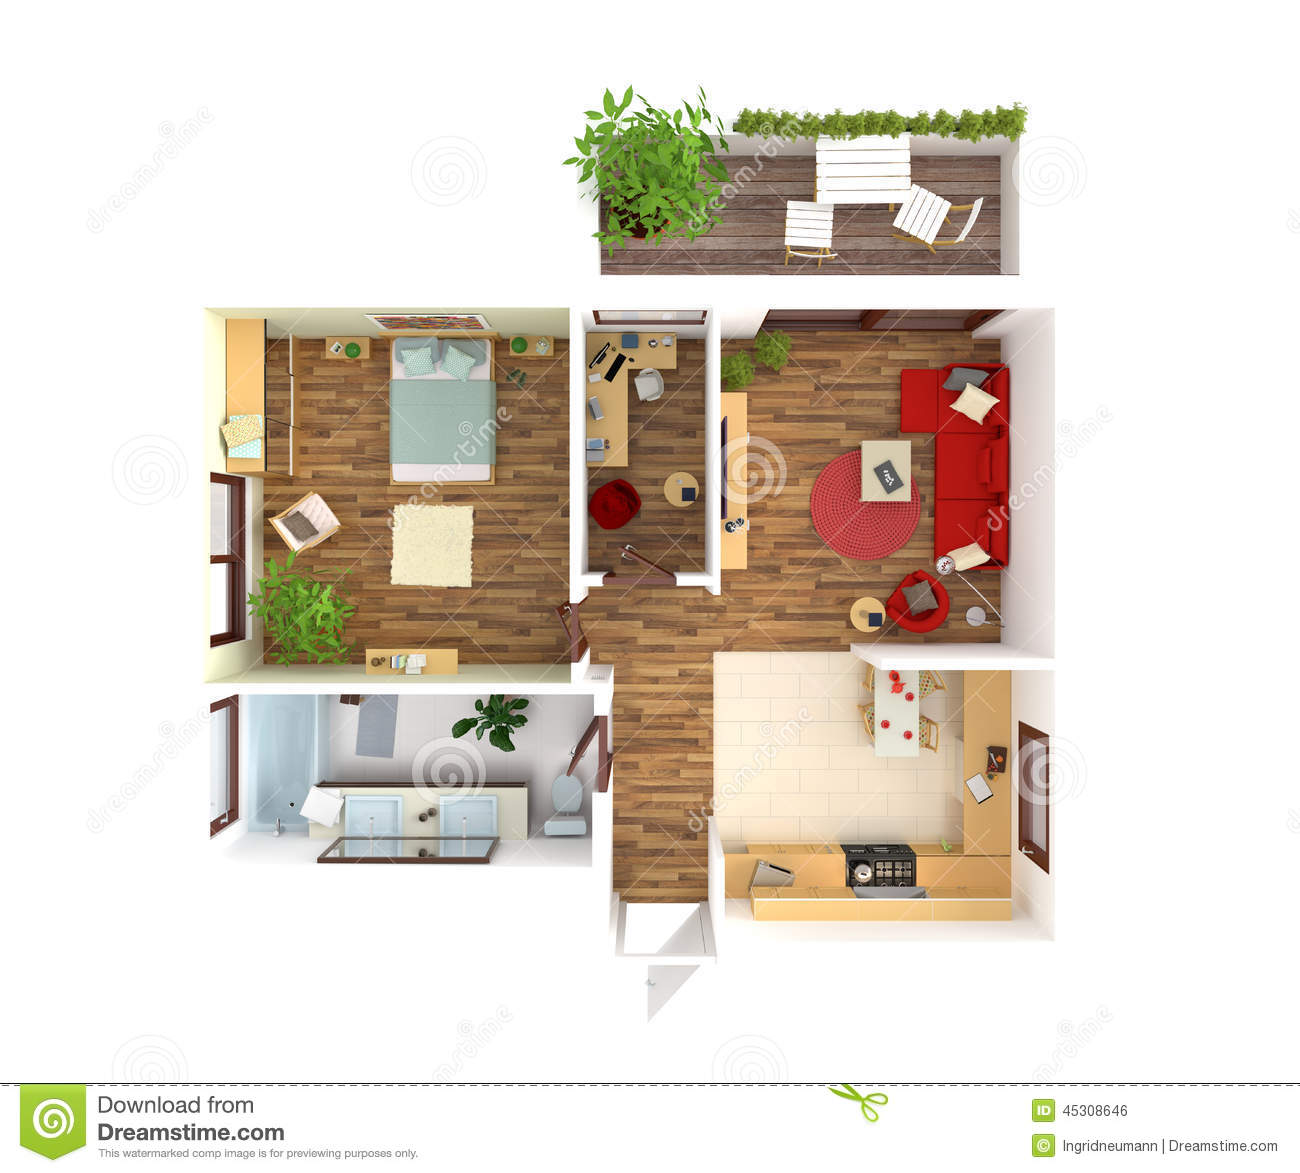 House plan top view interior design stock illustration for Interior house plans with photos